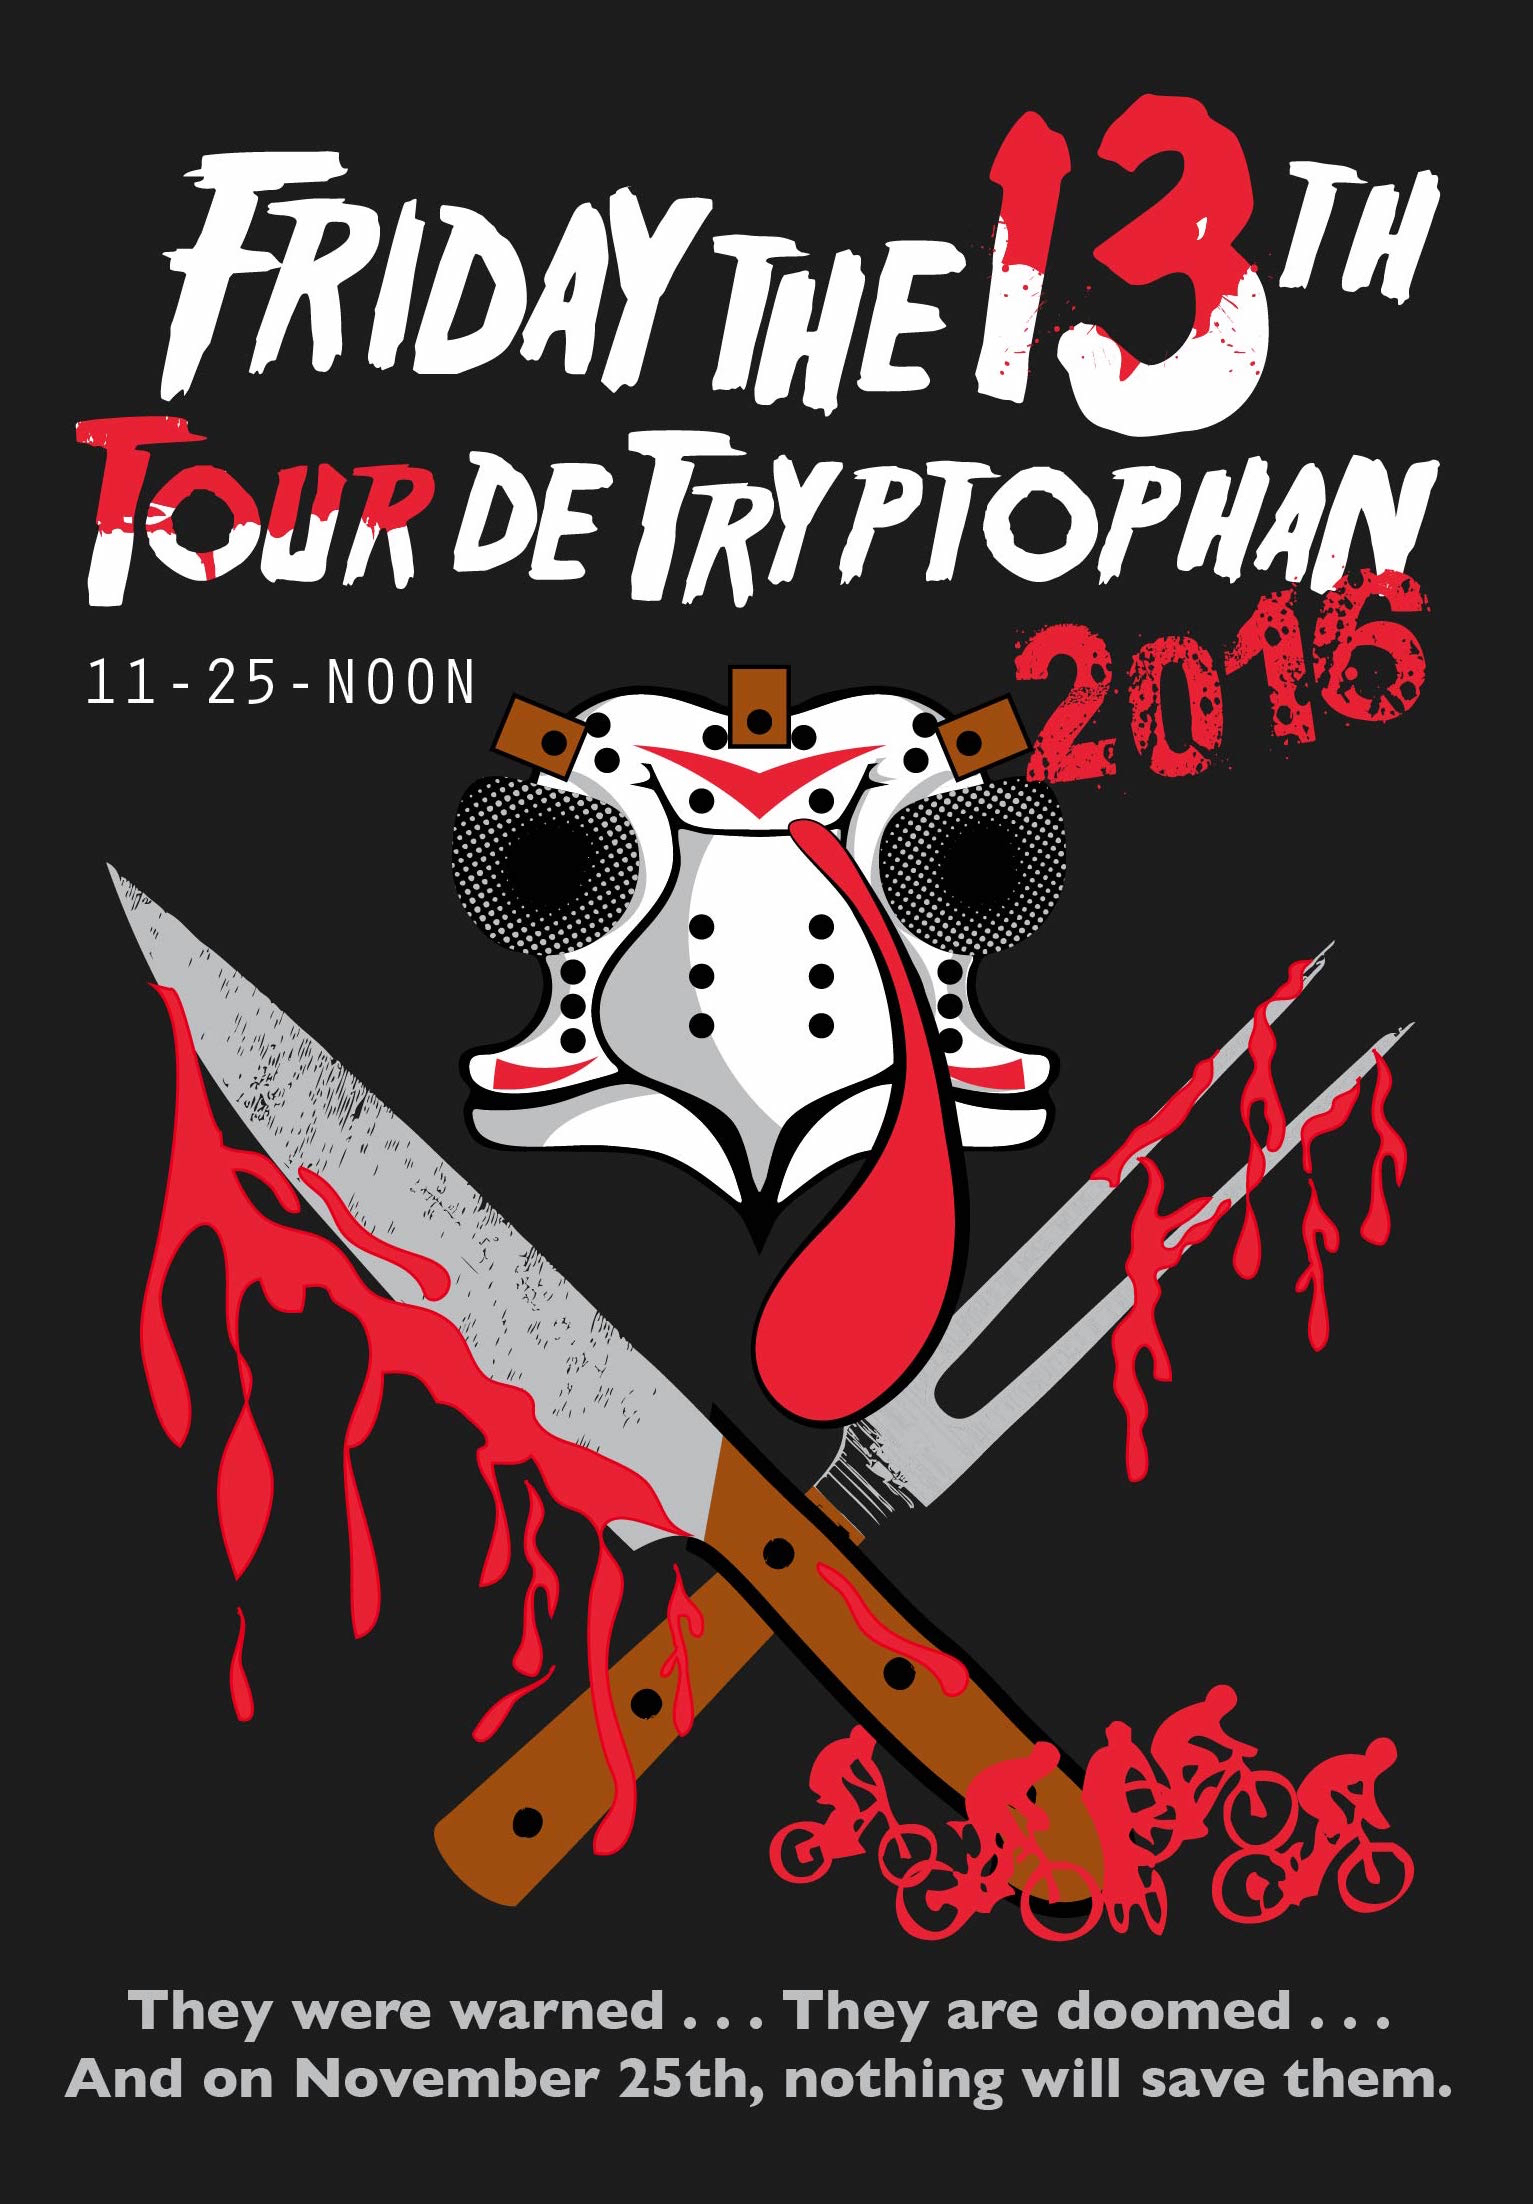 2016 Black Friday Tour de Tryptophan/24 Hours of the Fullerton Loop Benefits SHARE Mountain Bike Club